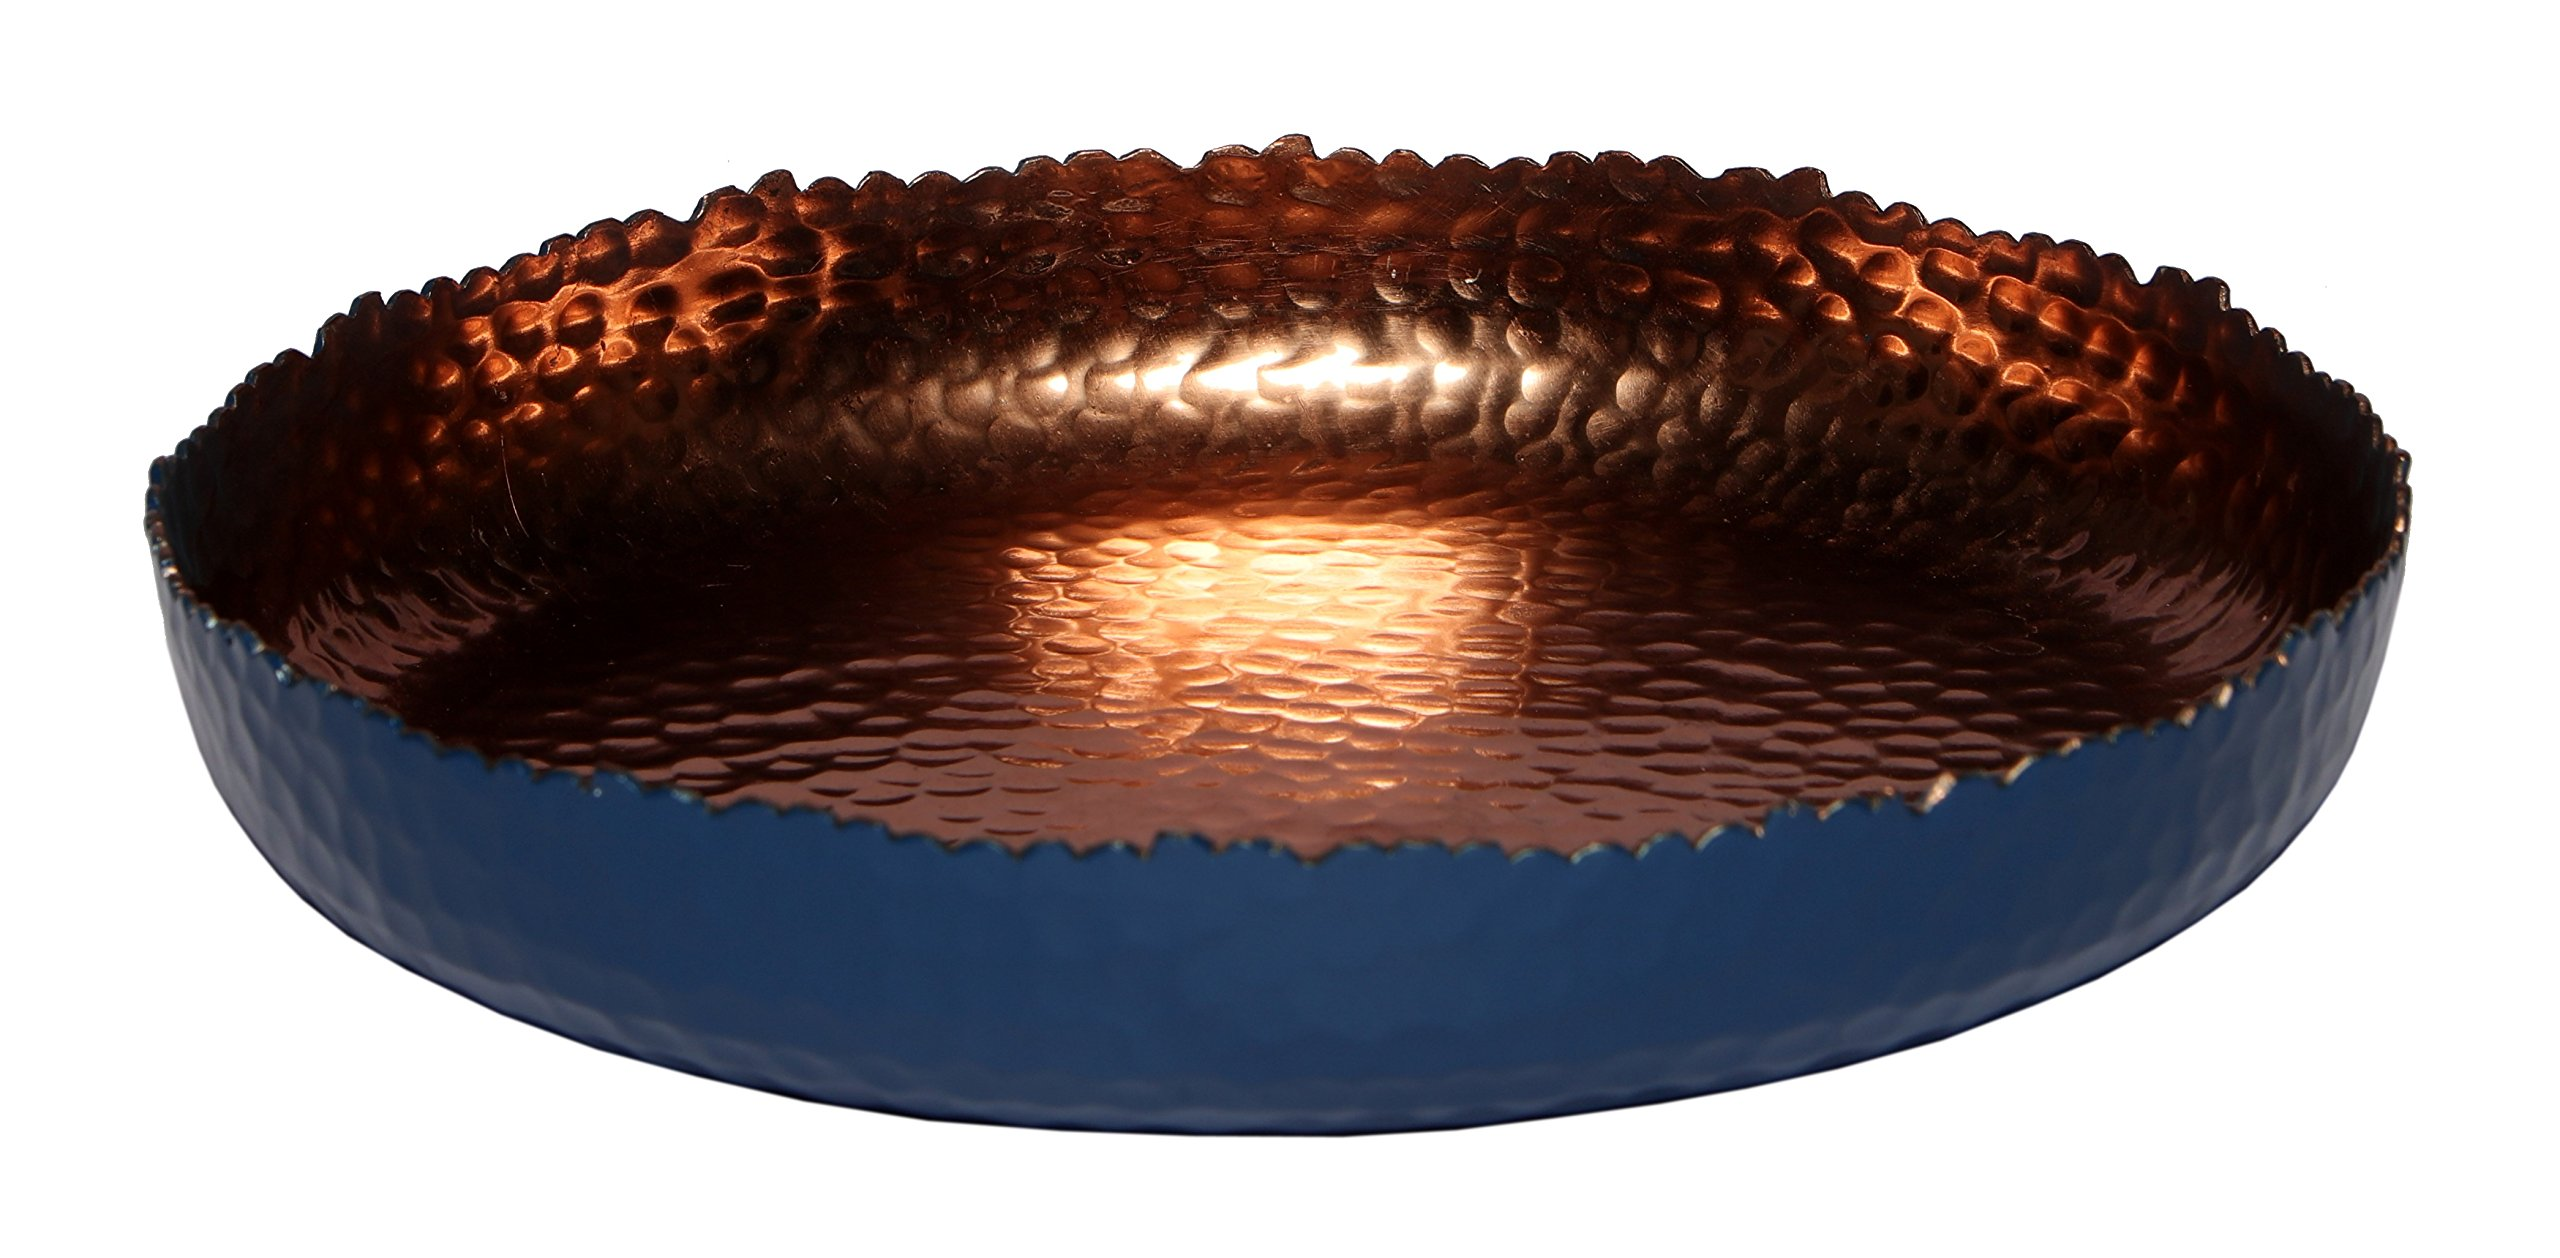 Melange Home Decor Cuivre Collection, 9-inch Round Platter, Color - Navy, Pack of 12